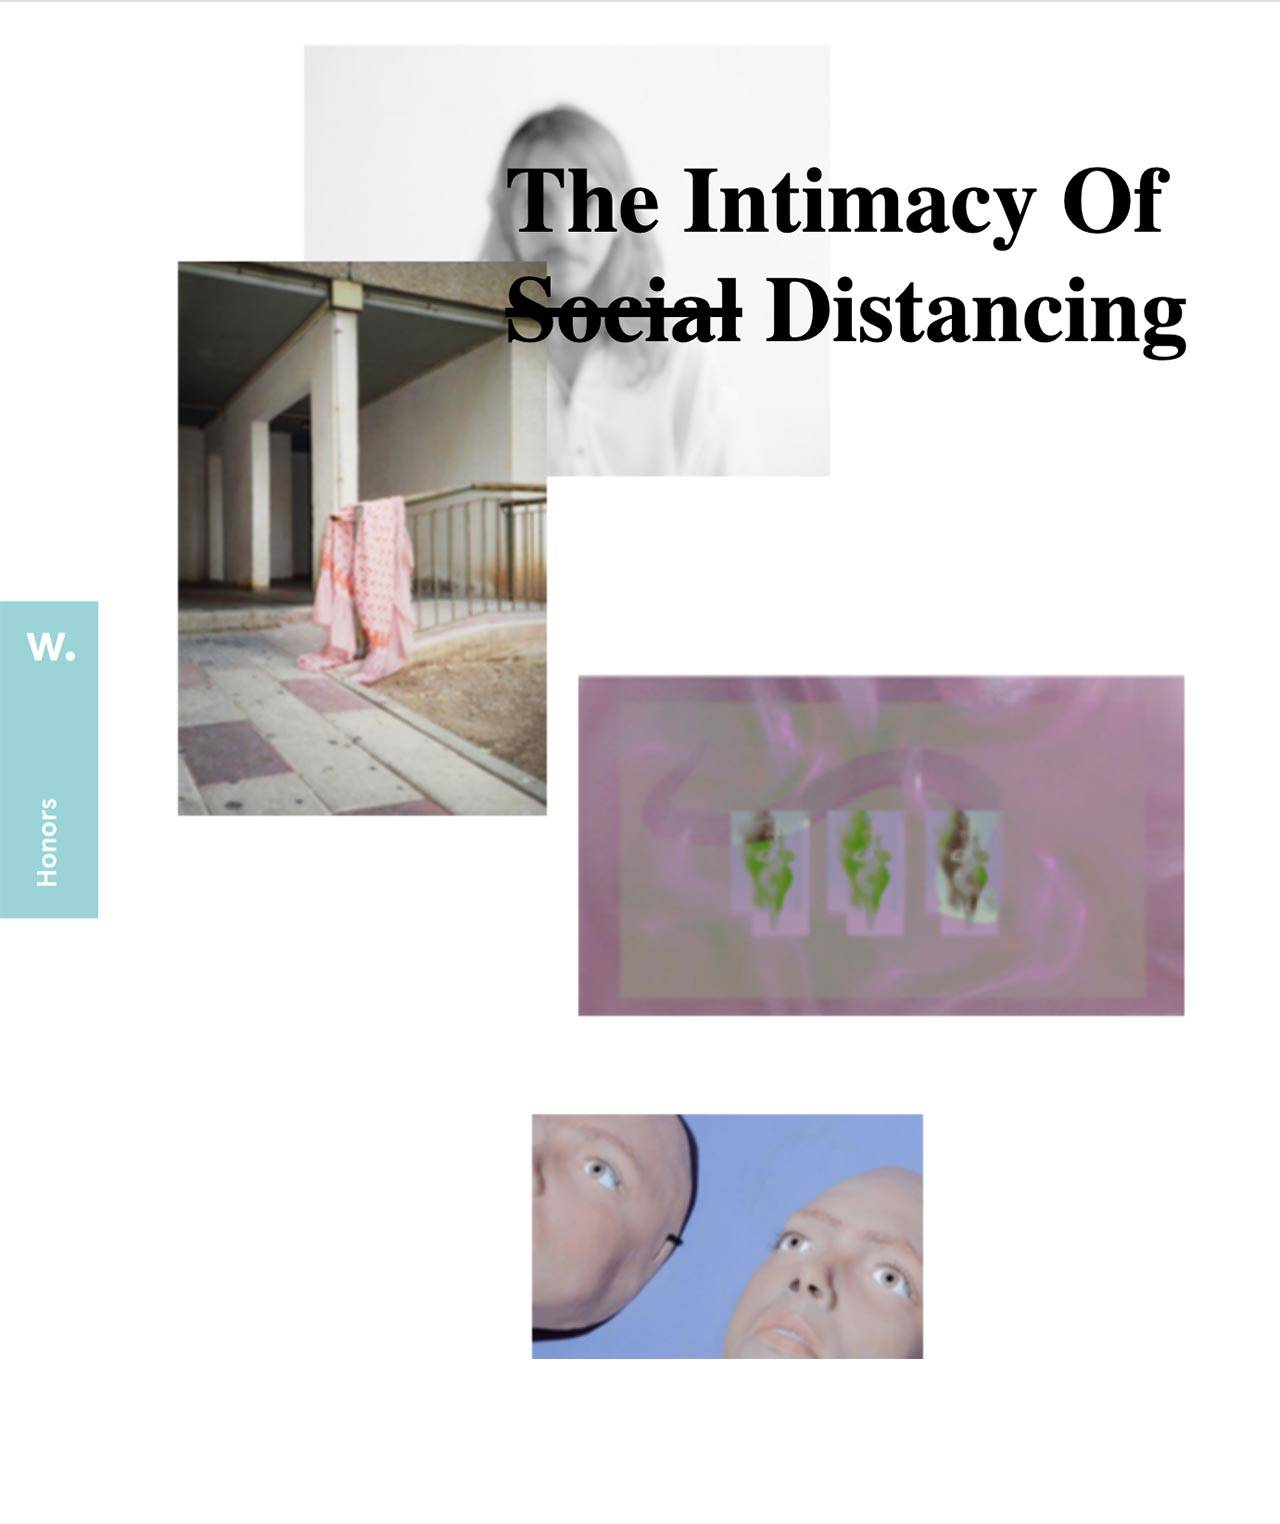 The Intimacy of Social Distancing